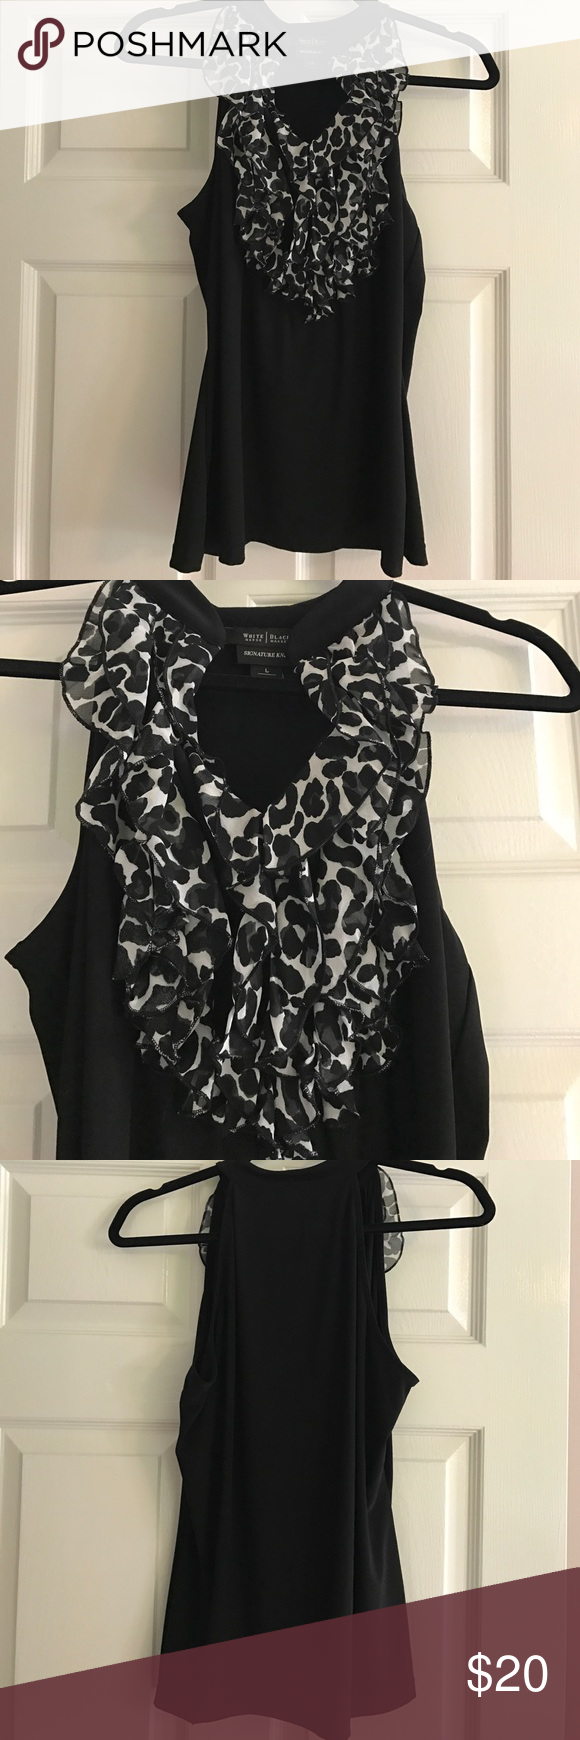 Great WHBM Ruffled Tank. Animal print ruffles cascade down the front of this tank with a slight V-neck design. Black microfiber fabric makes this the perfect layering piece to wear to the office w/ a blazer & alone for drinks afterwards. Excellent condition. White House Black Market Tops Tank Tops